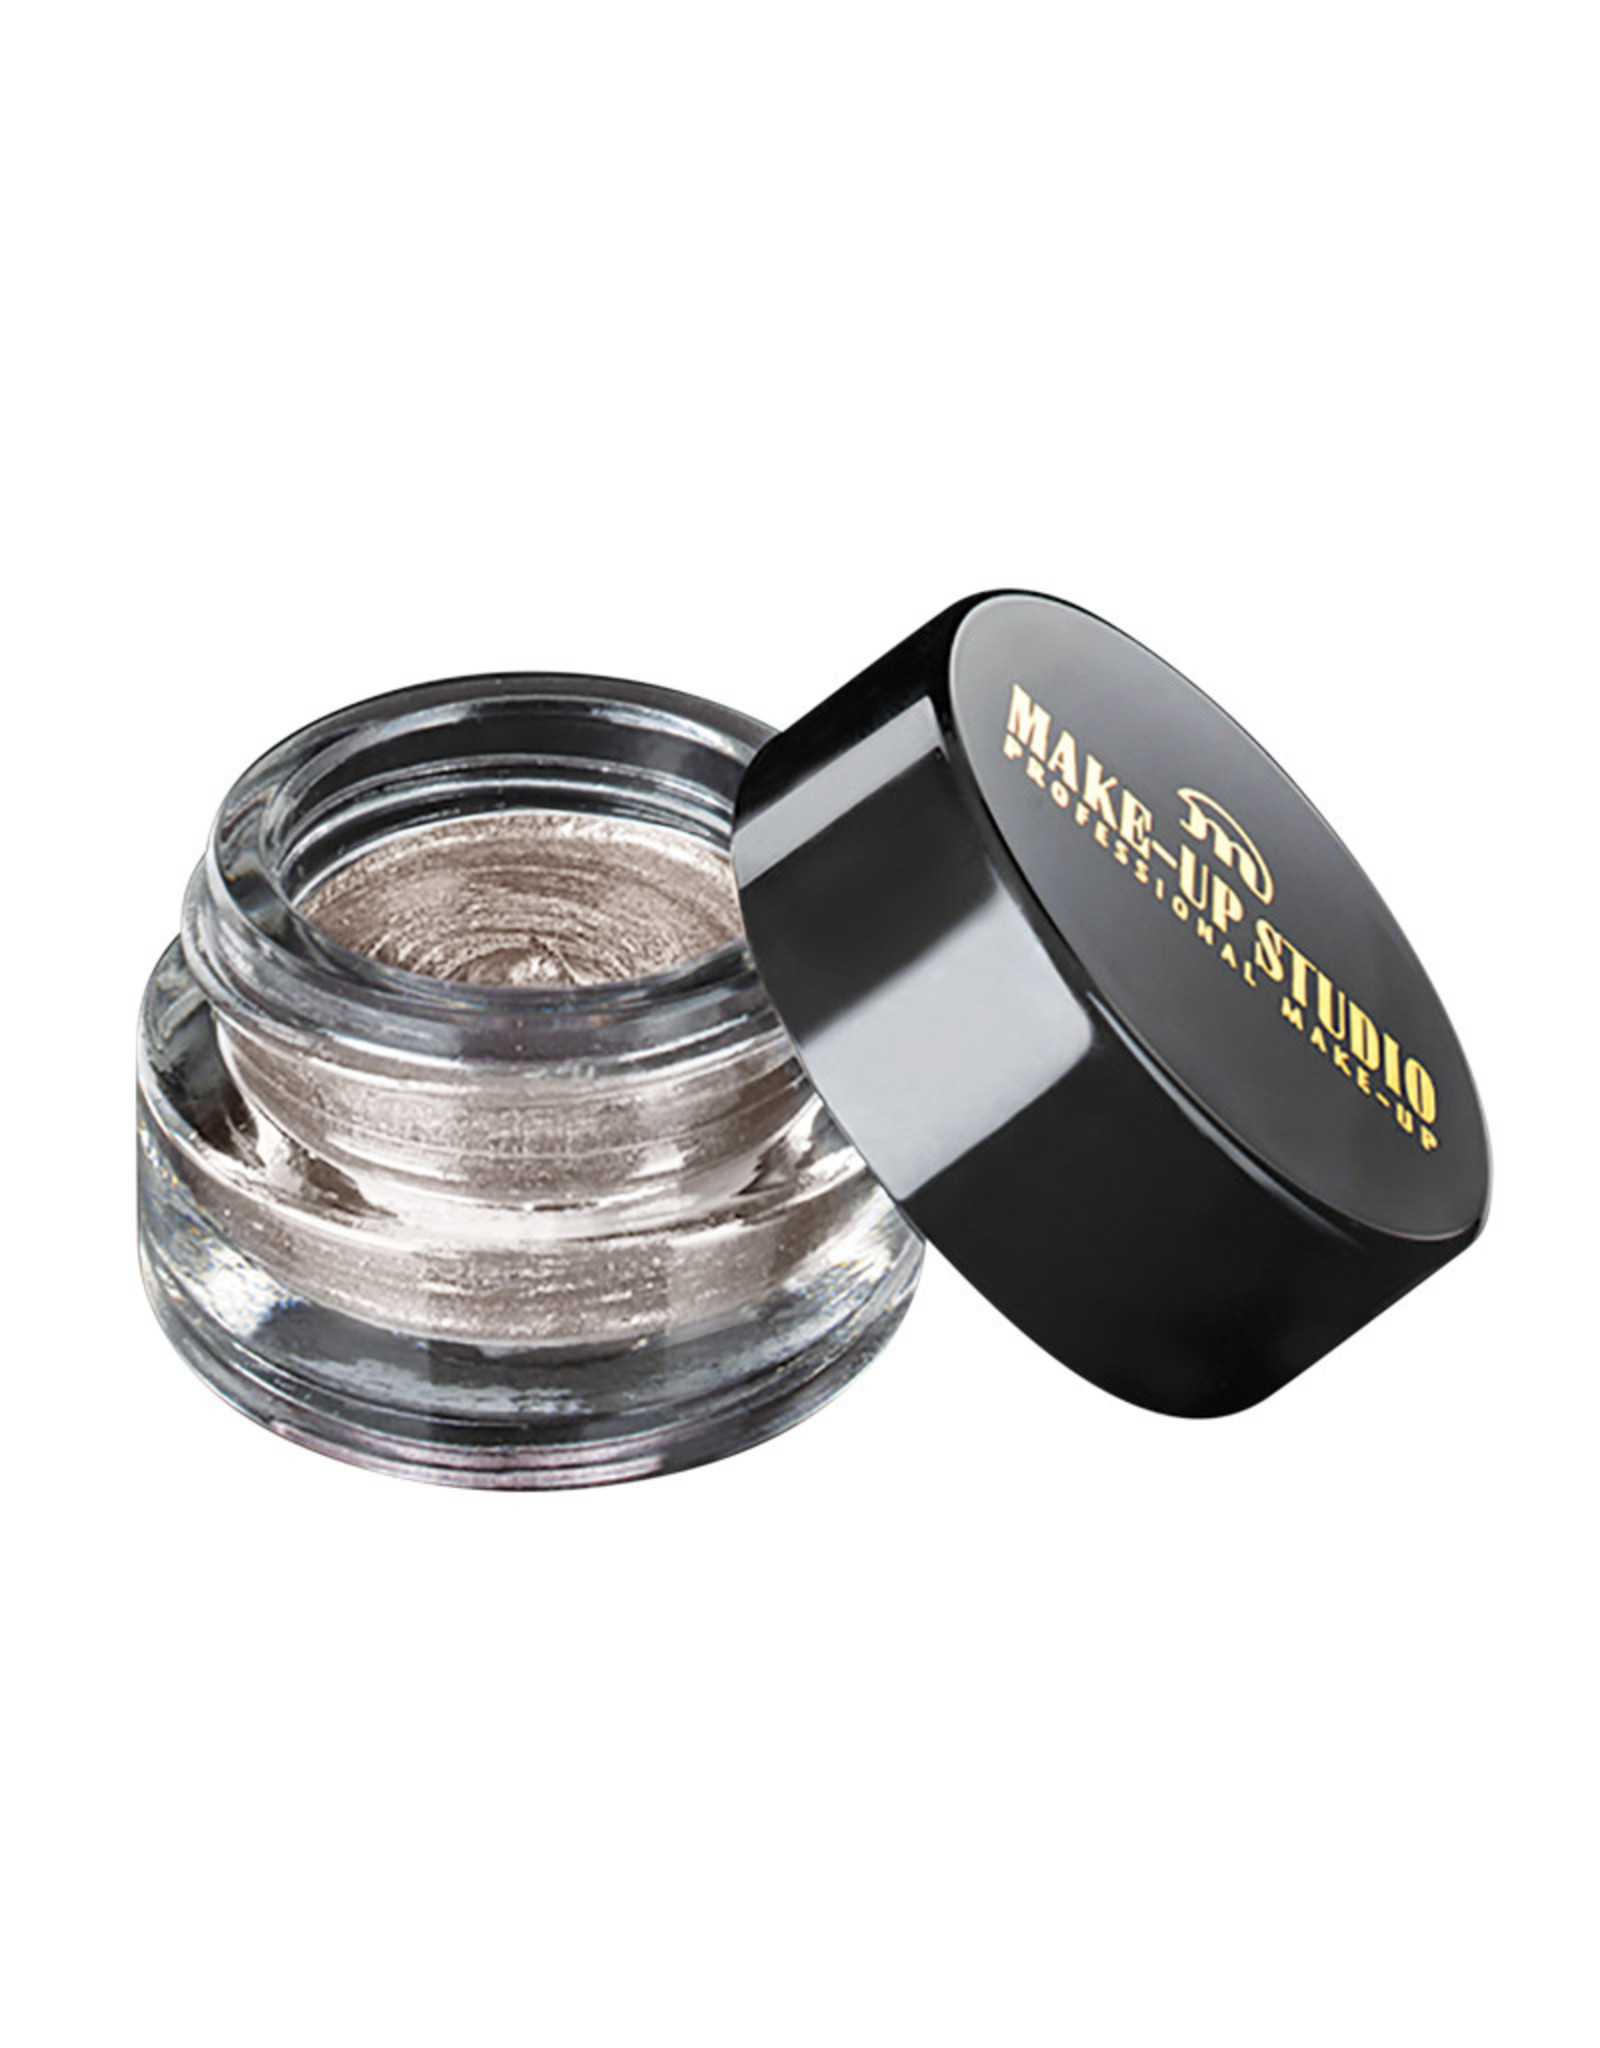 MAKE-UP STUDIO DURABLE EYESHADOW MOUSSE PEARL PERFECT